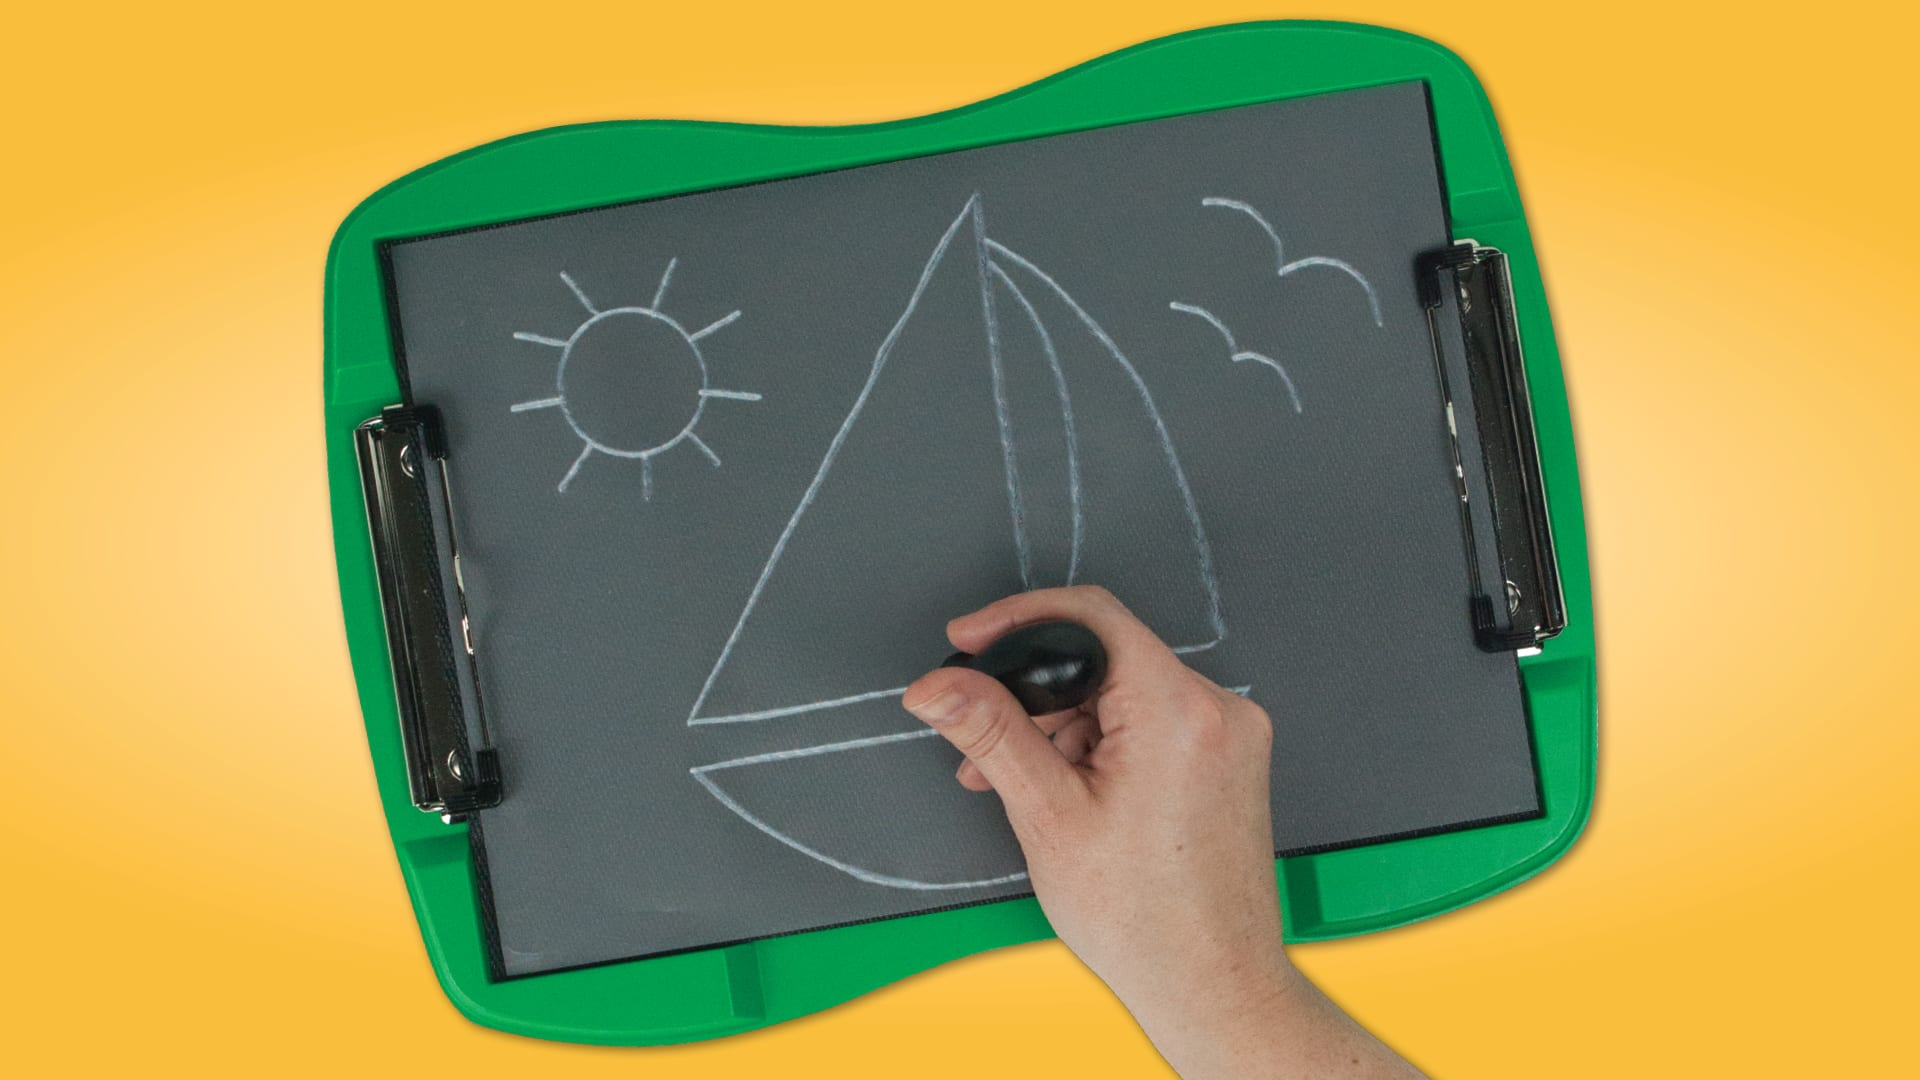 green tactile doodle frame, back body, white lines showing the tactile drawing of a sailboat. a hand holds the stylus.